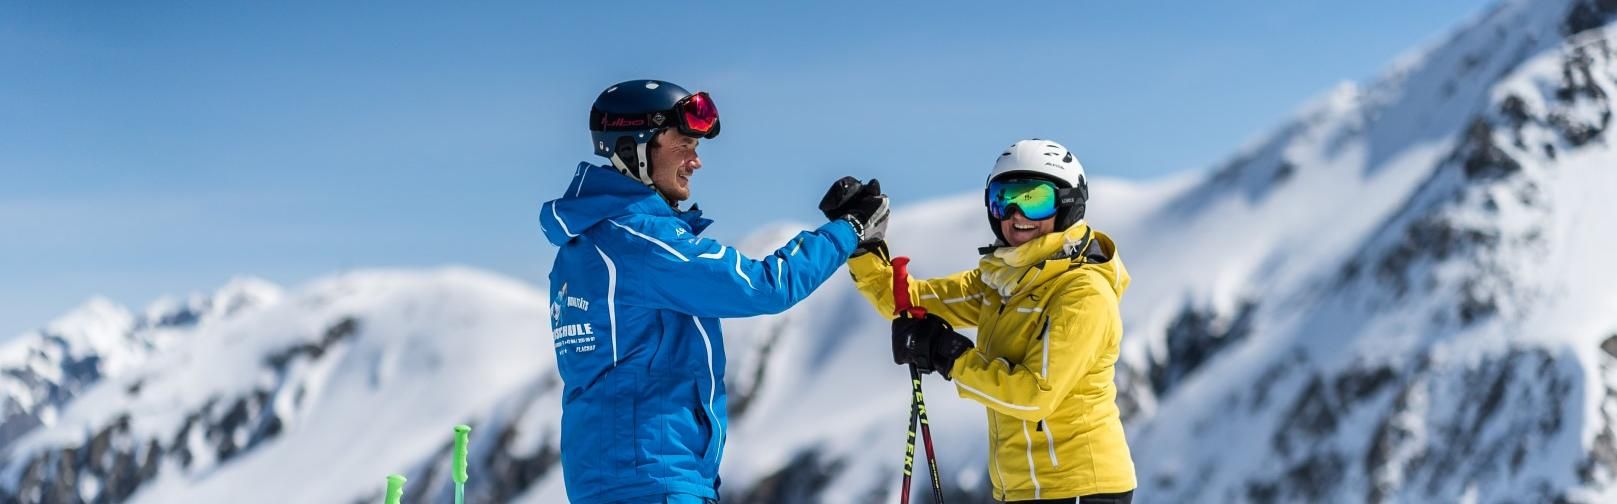 Ski school Flachau - private lessons ski for adults and children - ski course Flachau